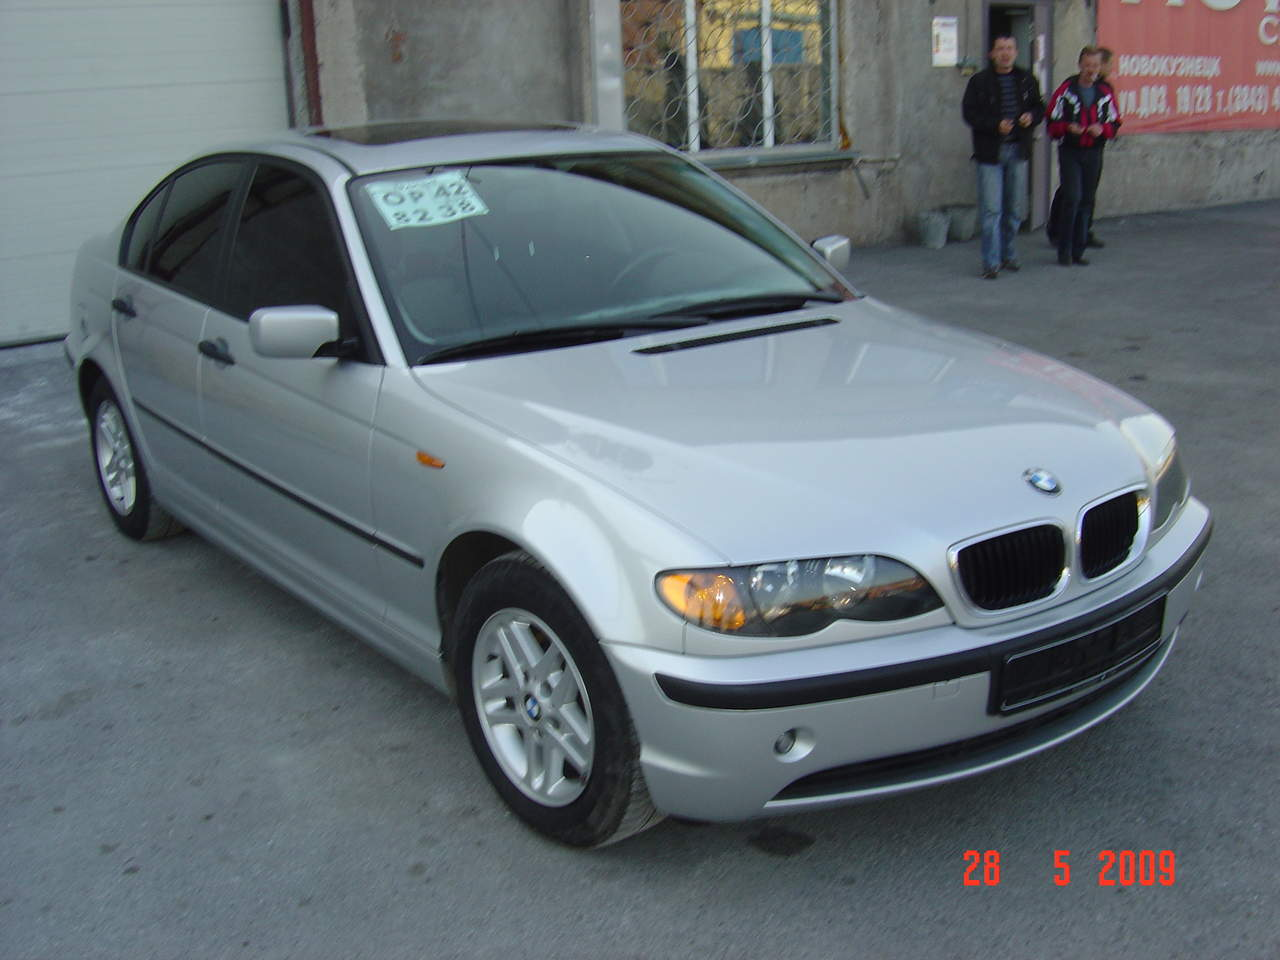 Used 2004 BMW 3-series Photos, 1800cc., Gasoline, FR or RR ...